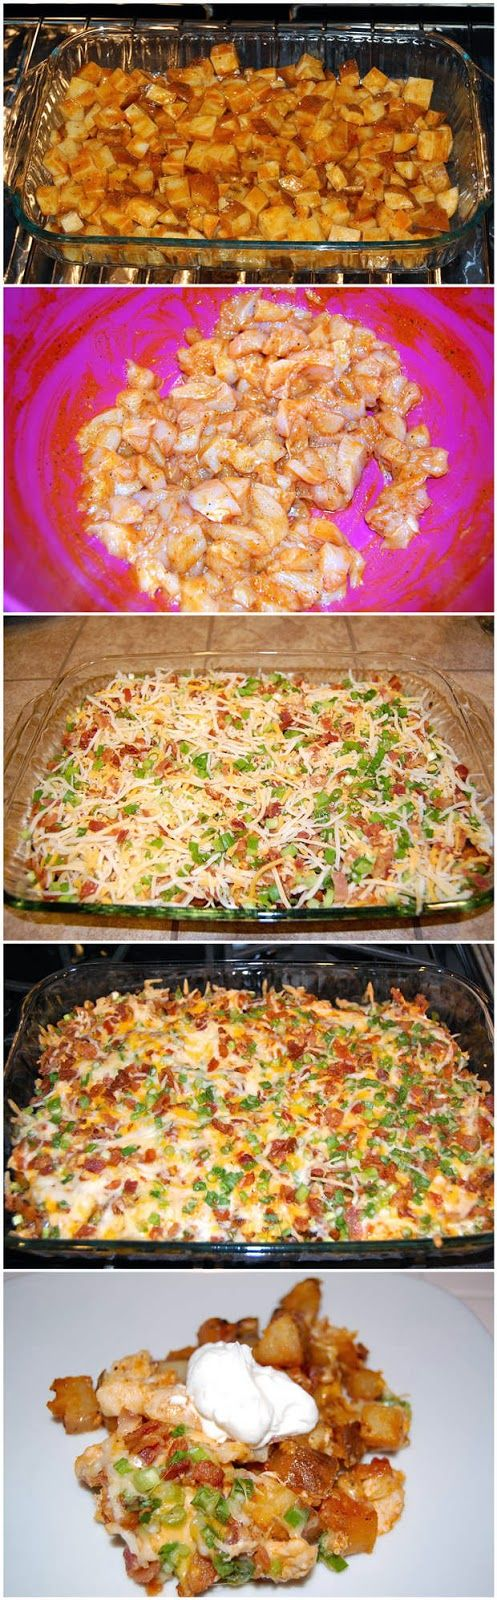 Loaded Baked Potato & Chicken Casserole - RedStarRecipe